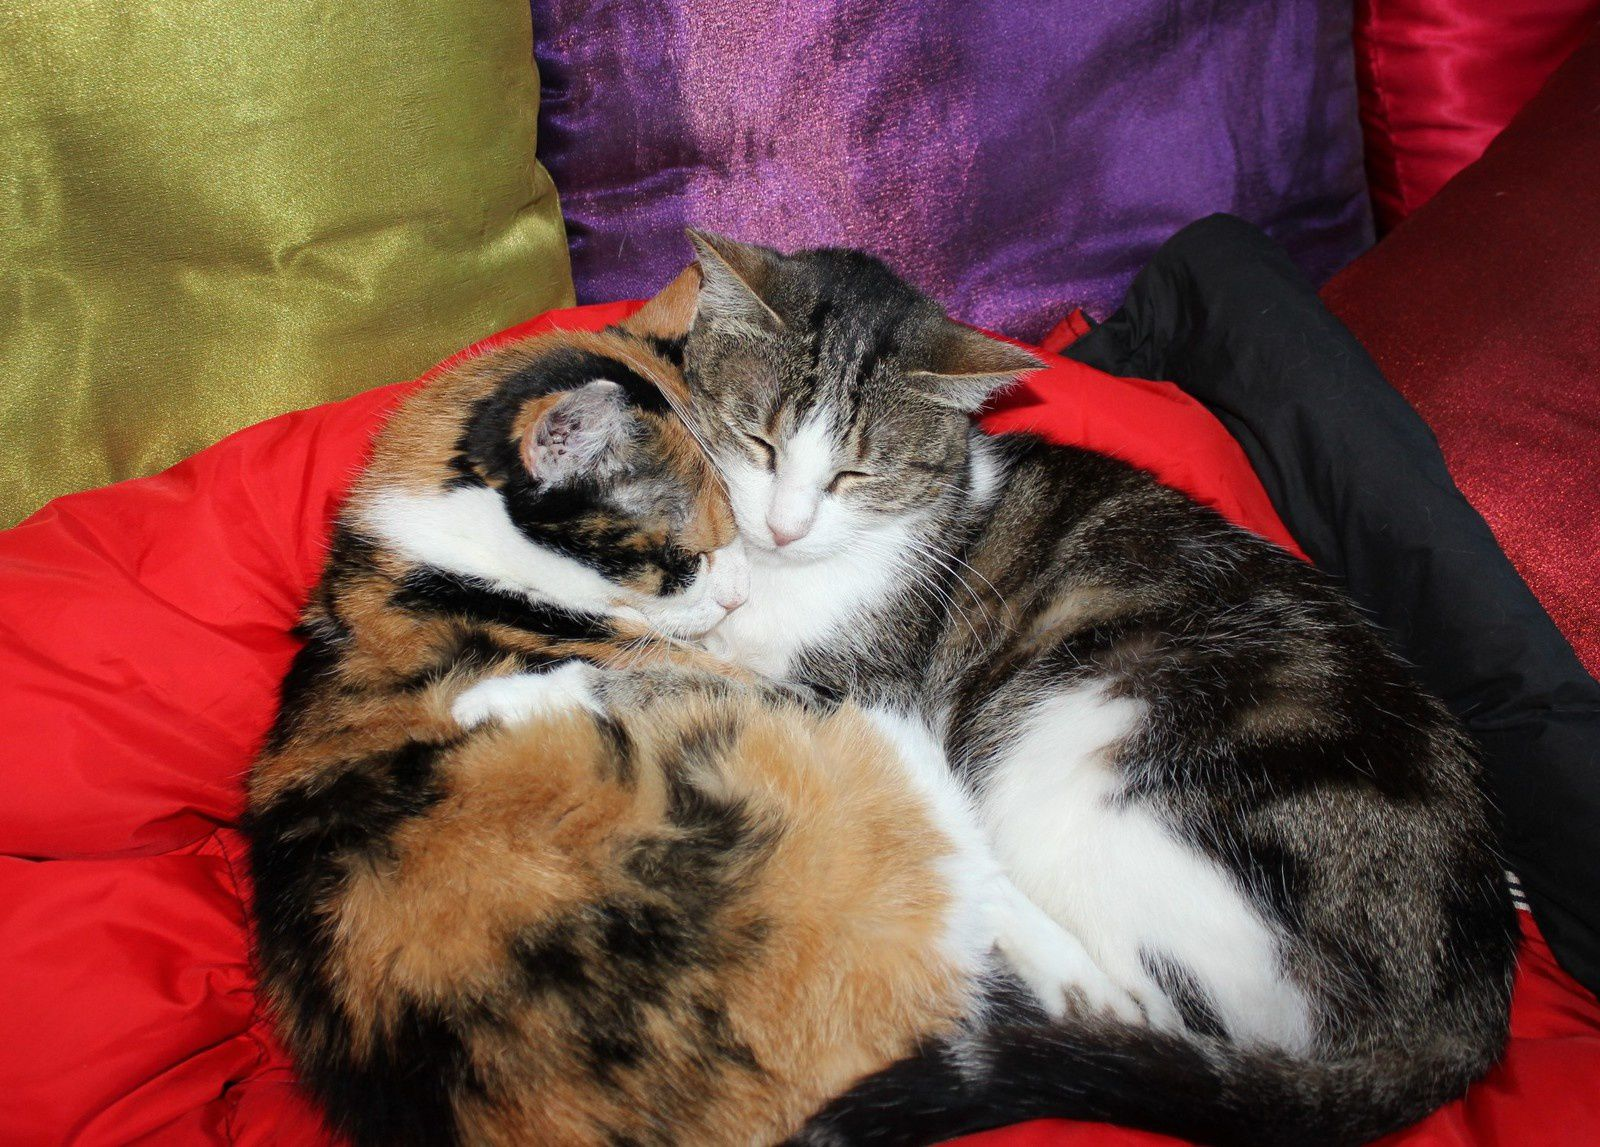 Deux chattes. Amour sans paroles.